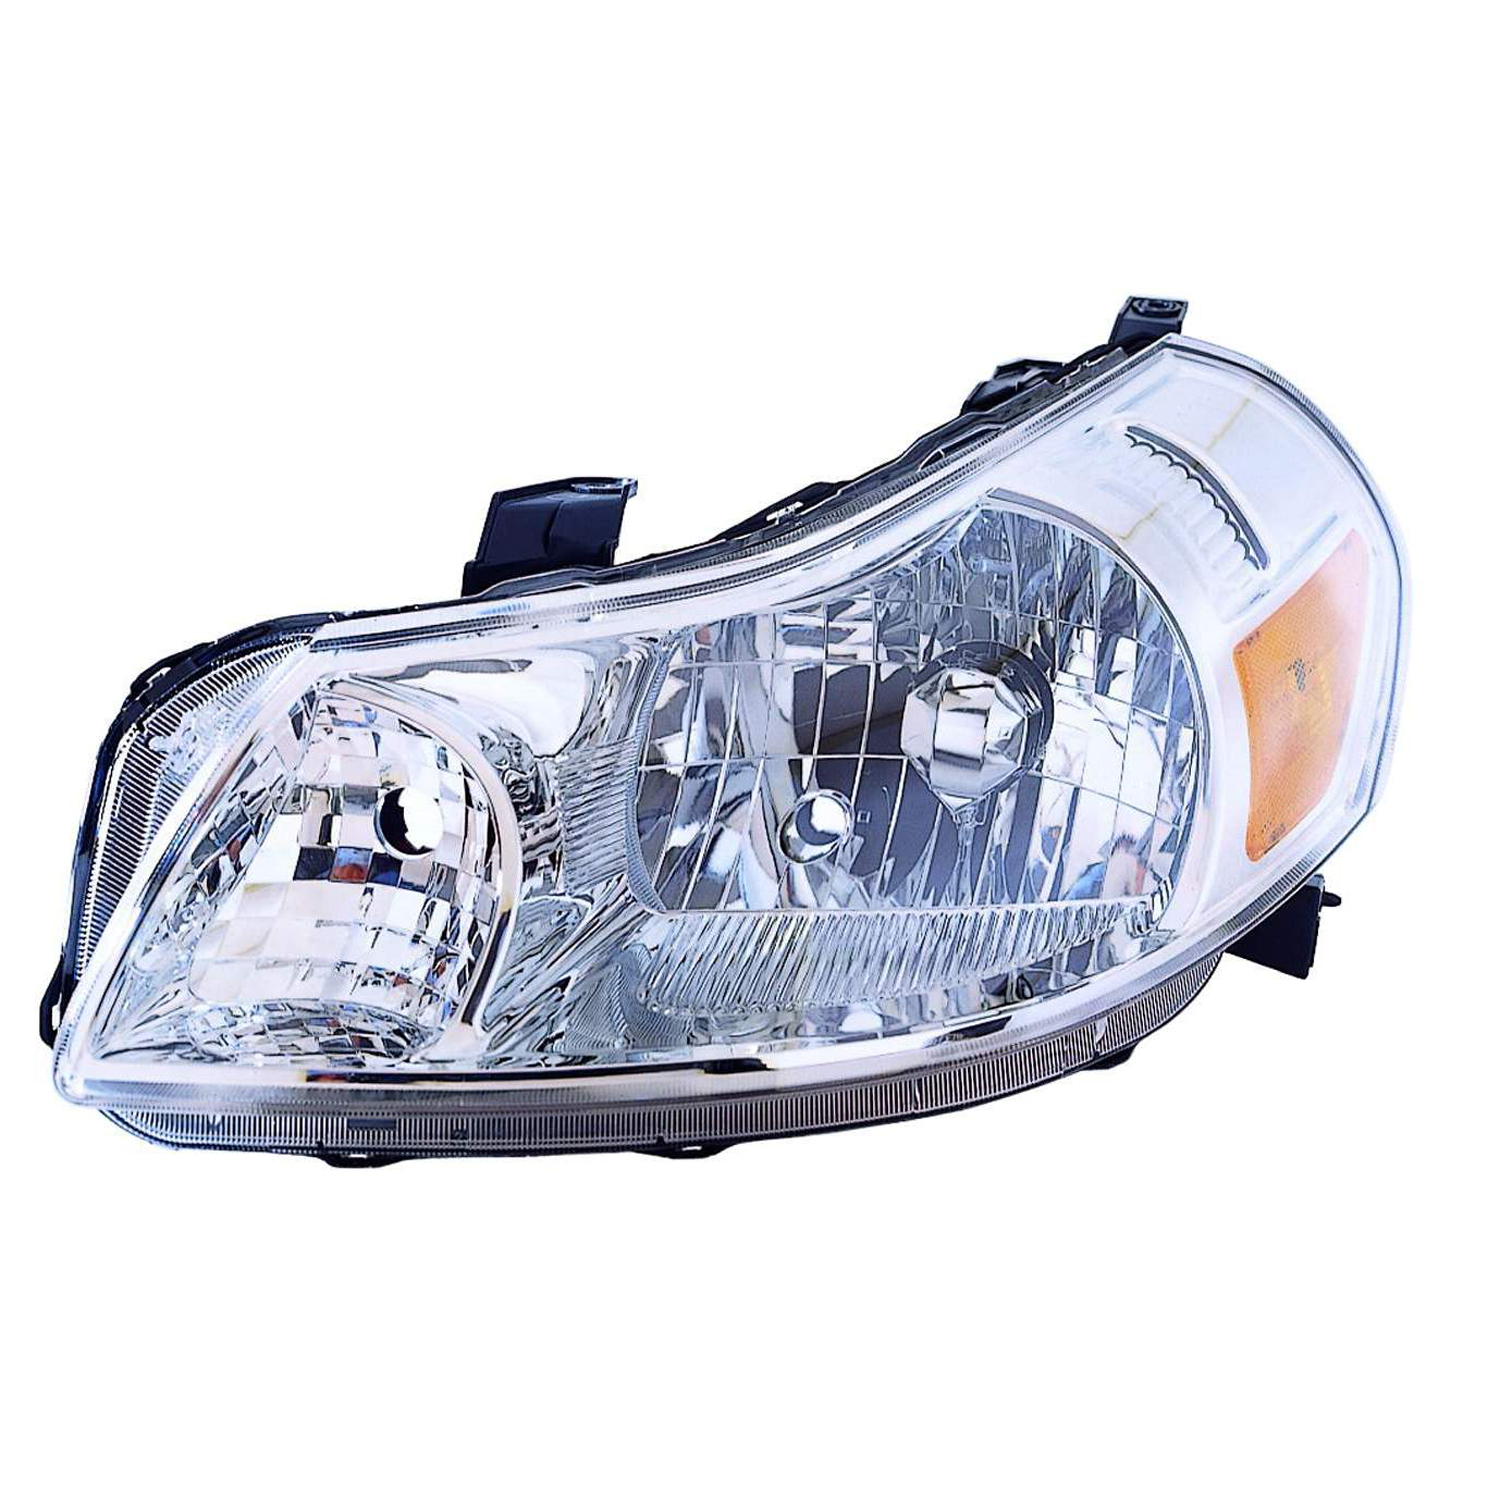 2007-2013 Suzuki SX4  Aftermarket Driver Side Front Head Lamp Lens and Housing 3532080J20 NSF